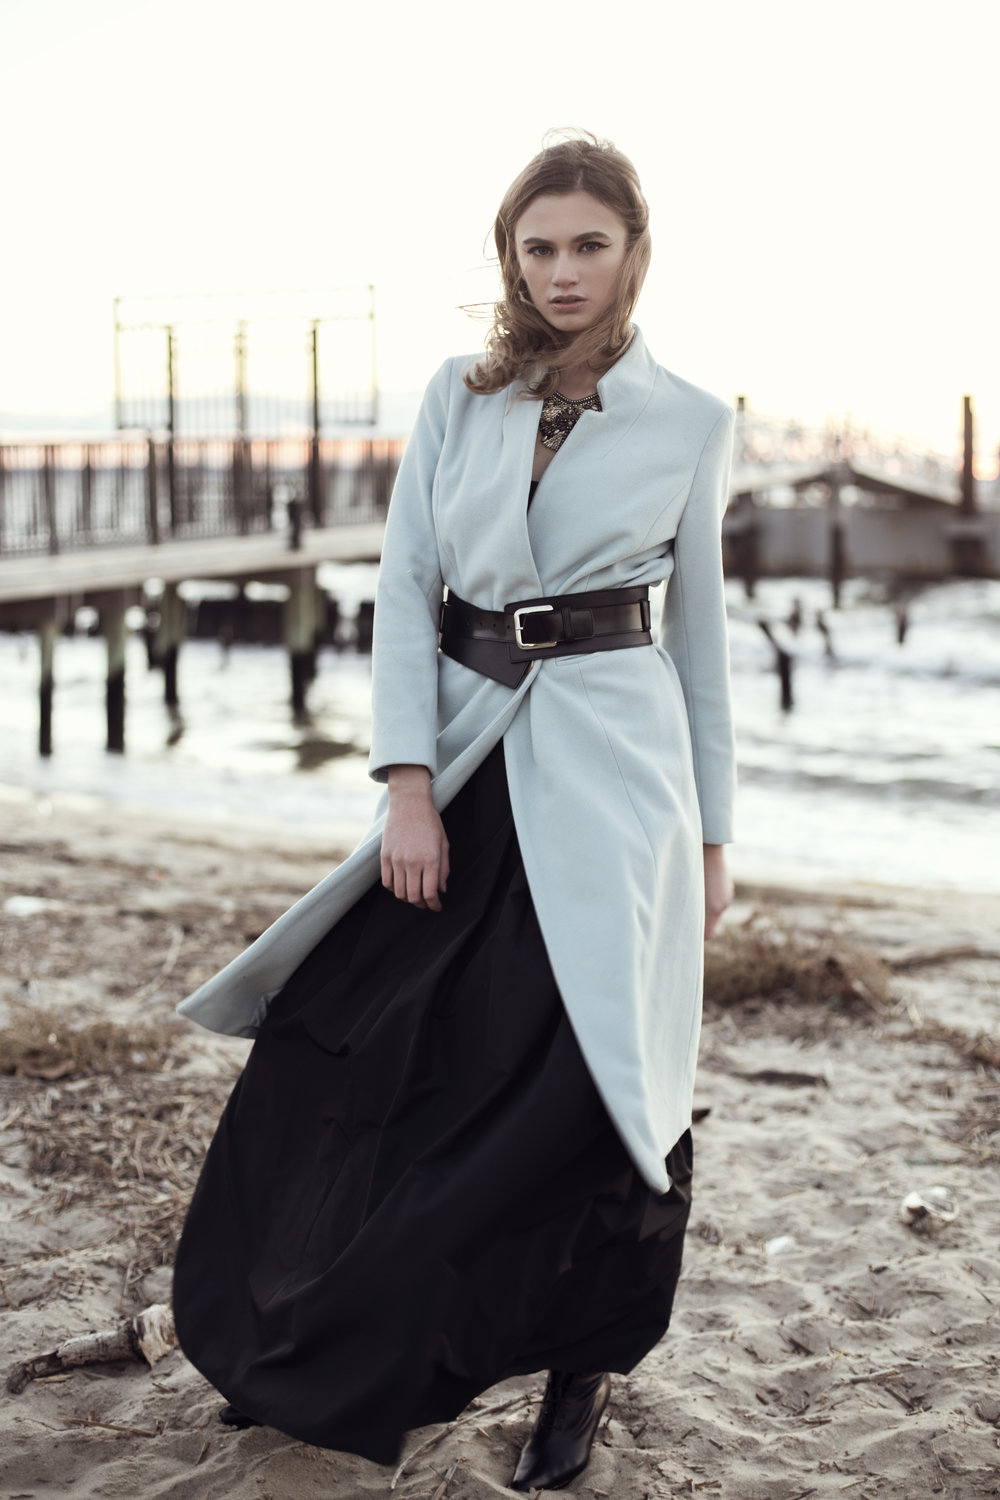 Jacket: A Piece Apart, Belt: Club Monaco, Skirt: Yvette Creation Paris, Shoes: Michel Perry, Necklace: Deepa Gurmani